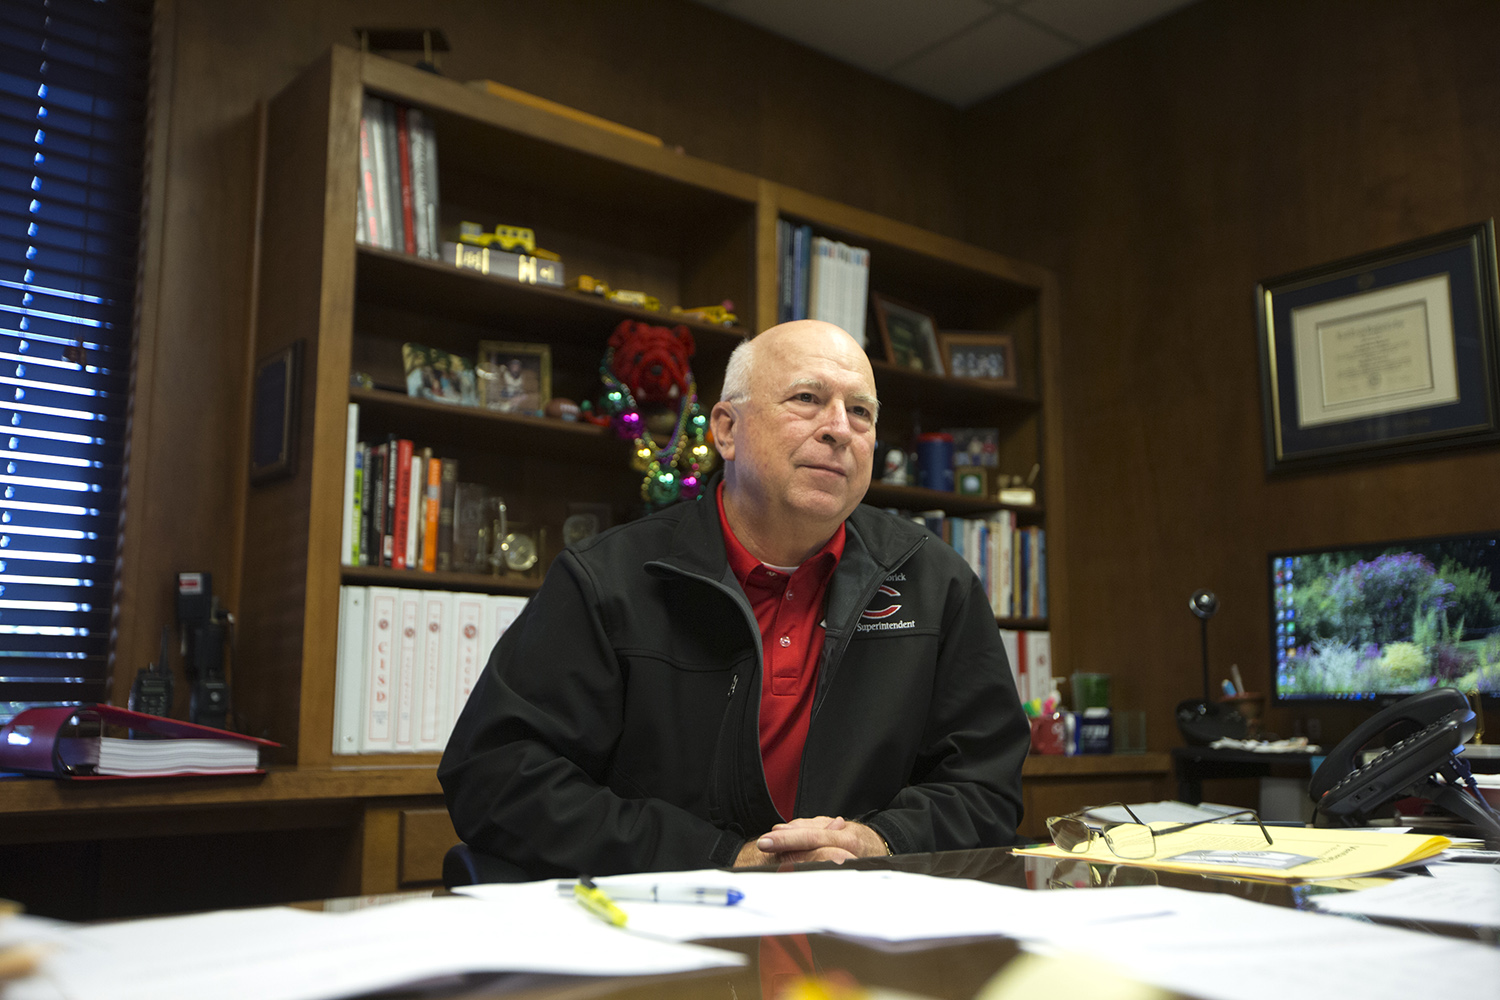 Superintendent Hambrick said the athletic director paid for his own raise by making the football program lucrative.